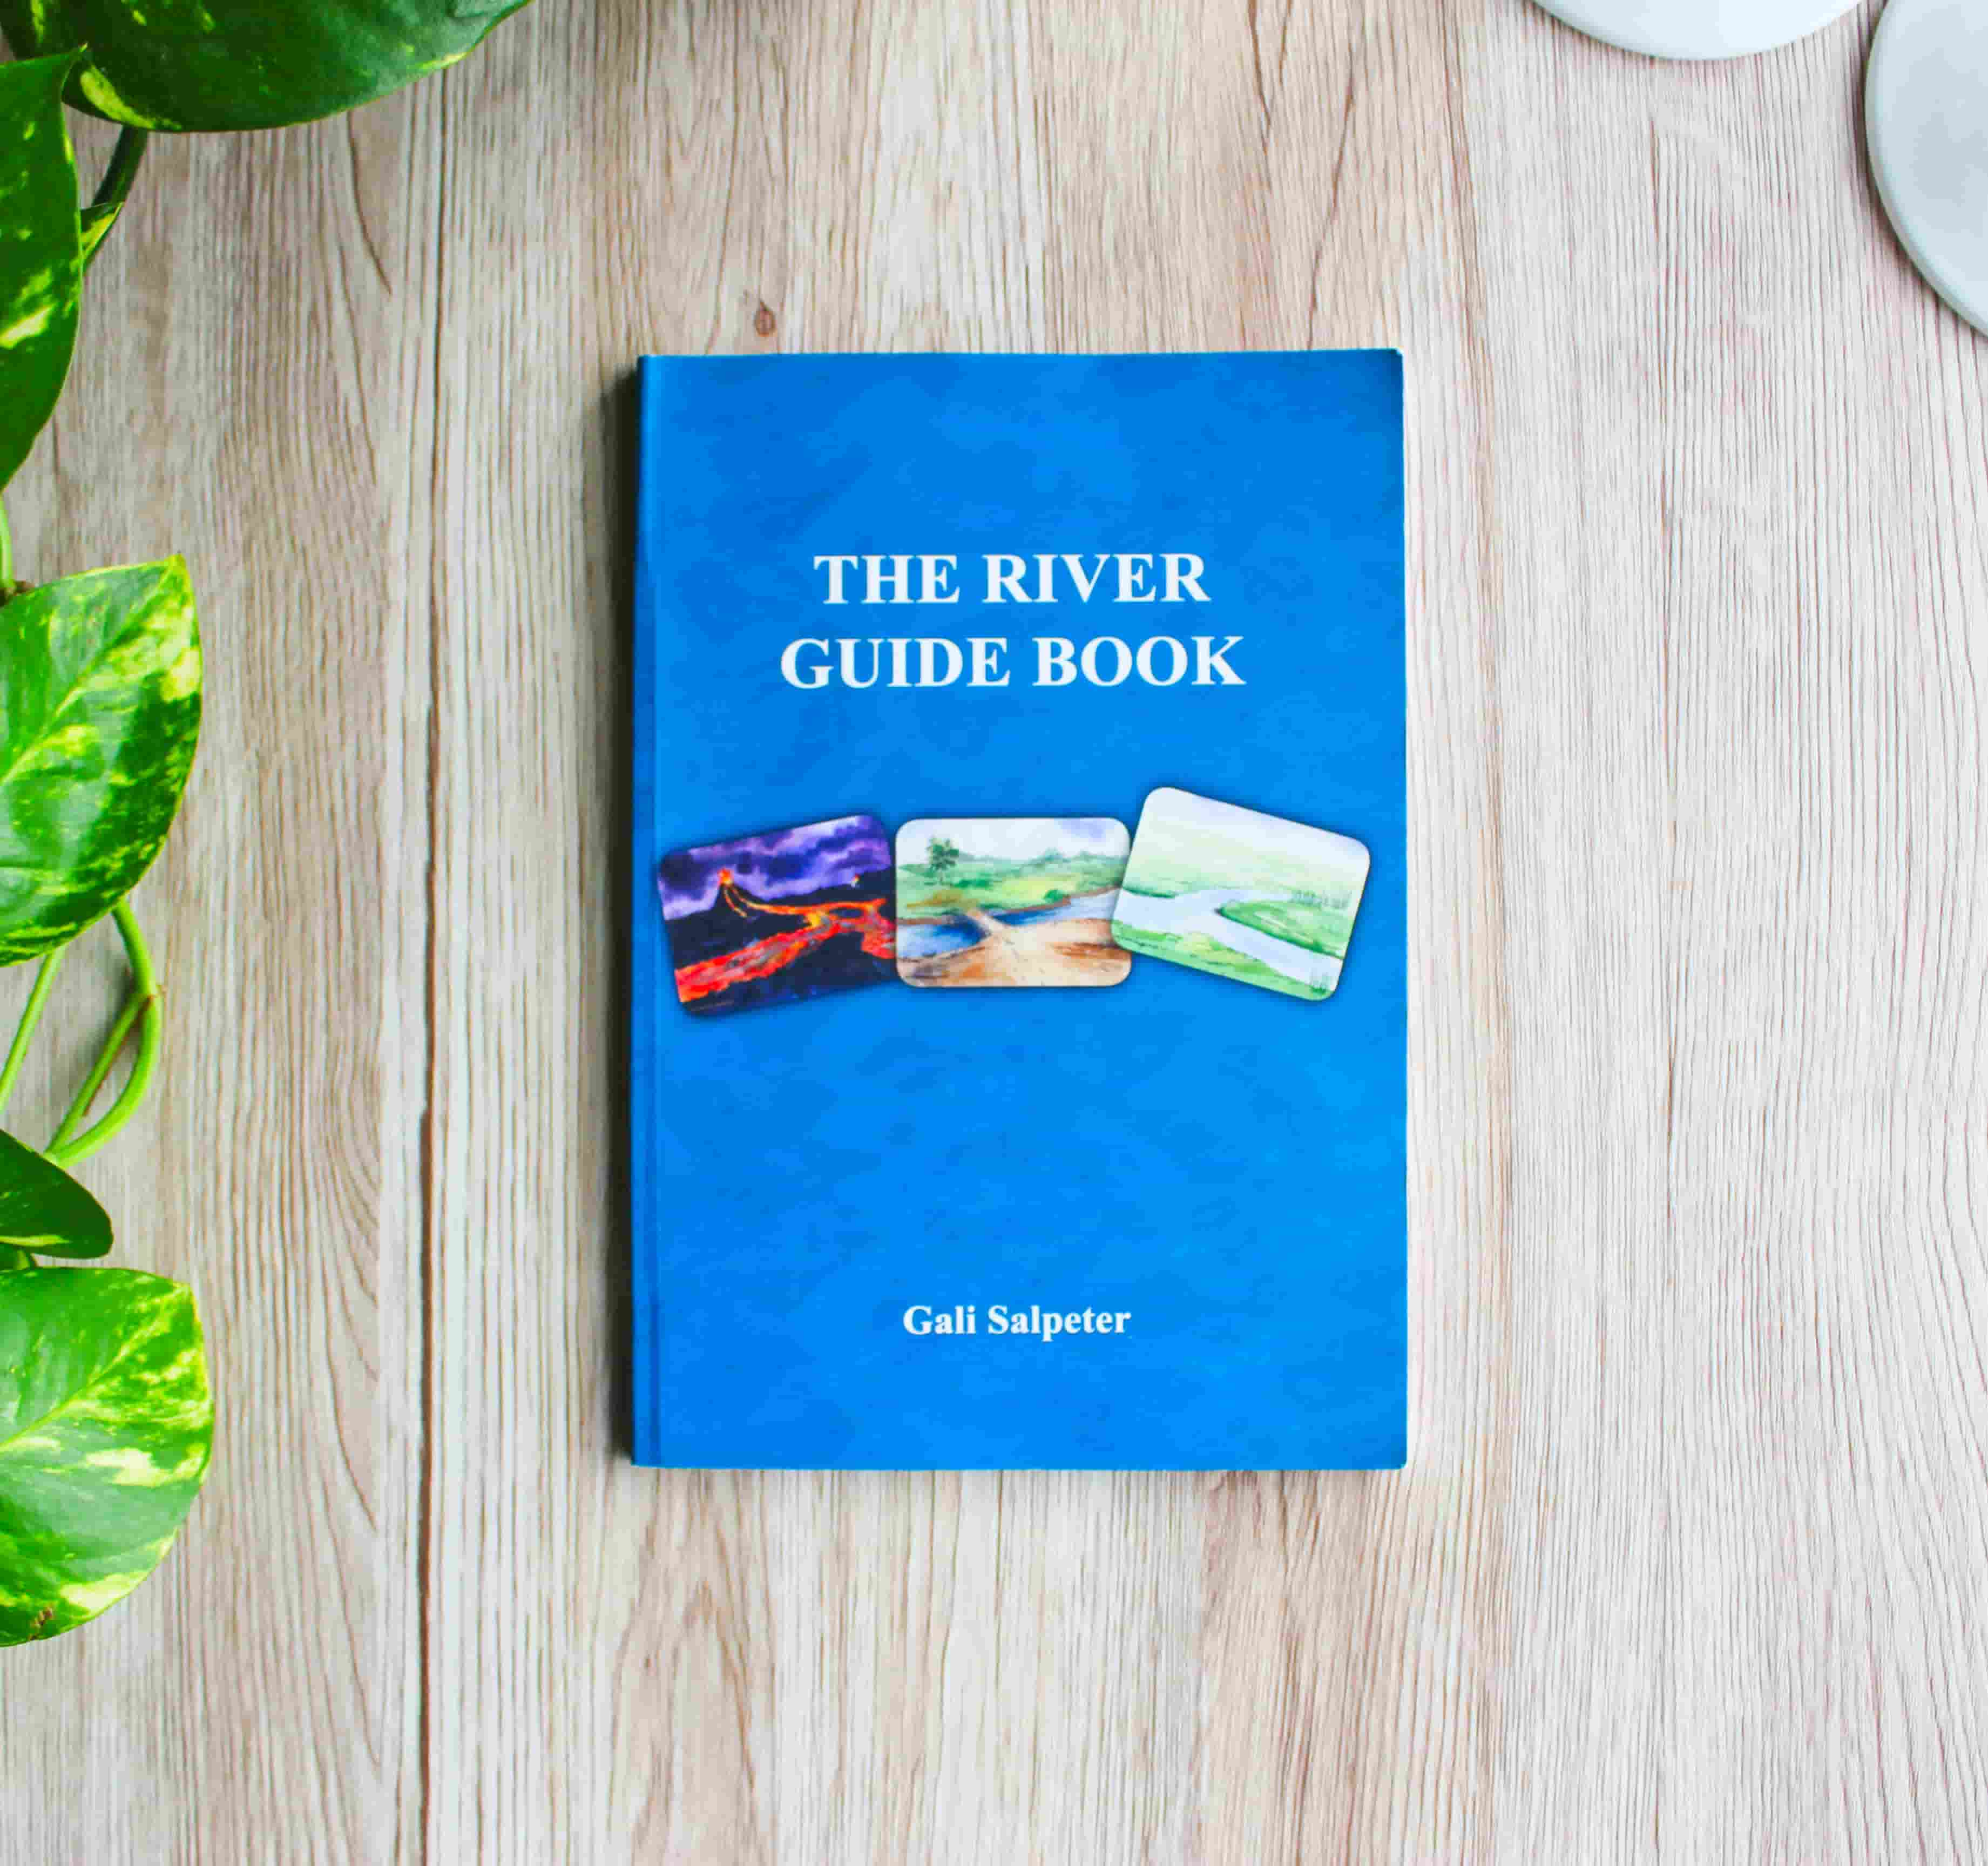 The river guide book